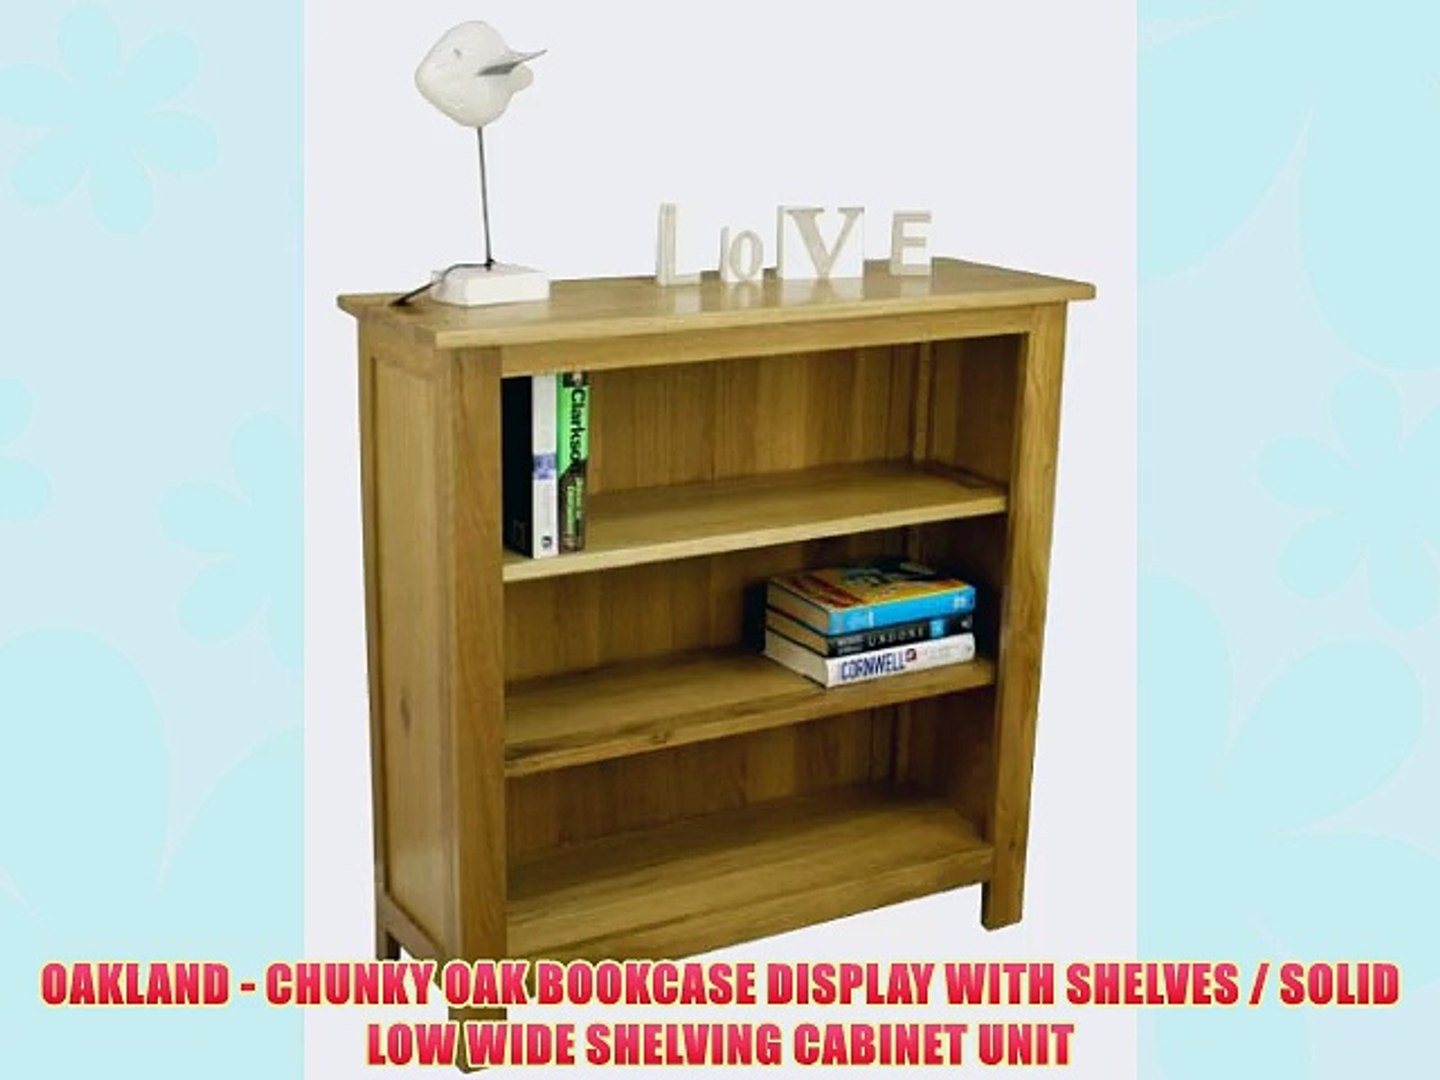 Oakland Chunky Oak Bookcase Display With Shelves Solid Low Wide Shelving Cabinet Unit